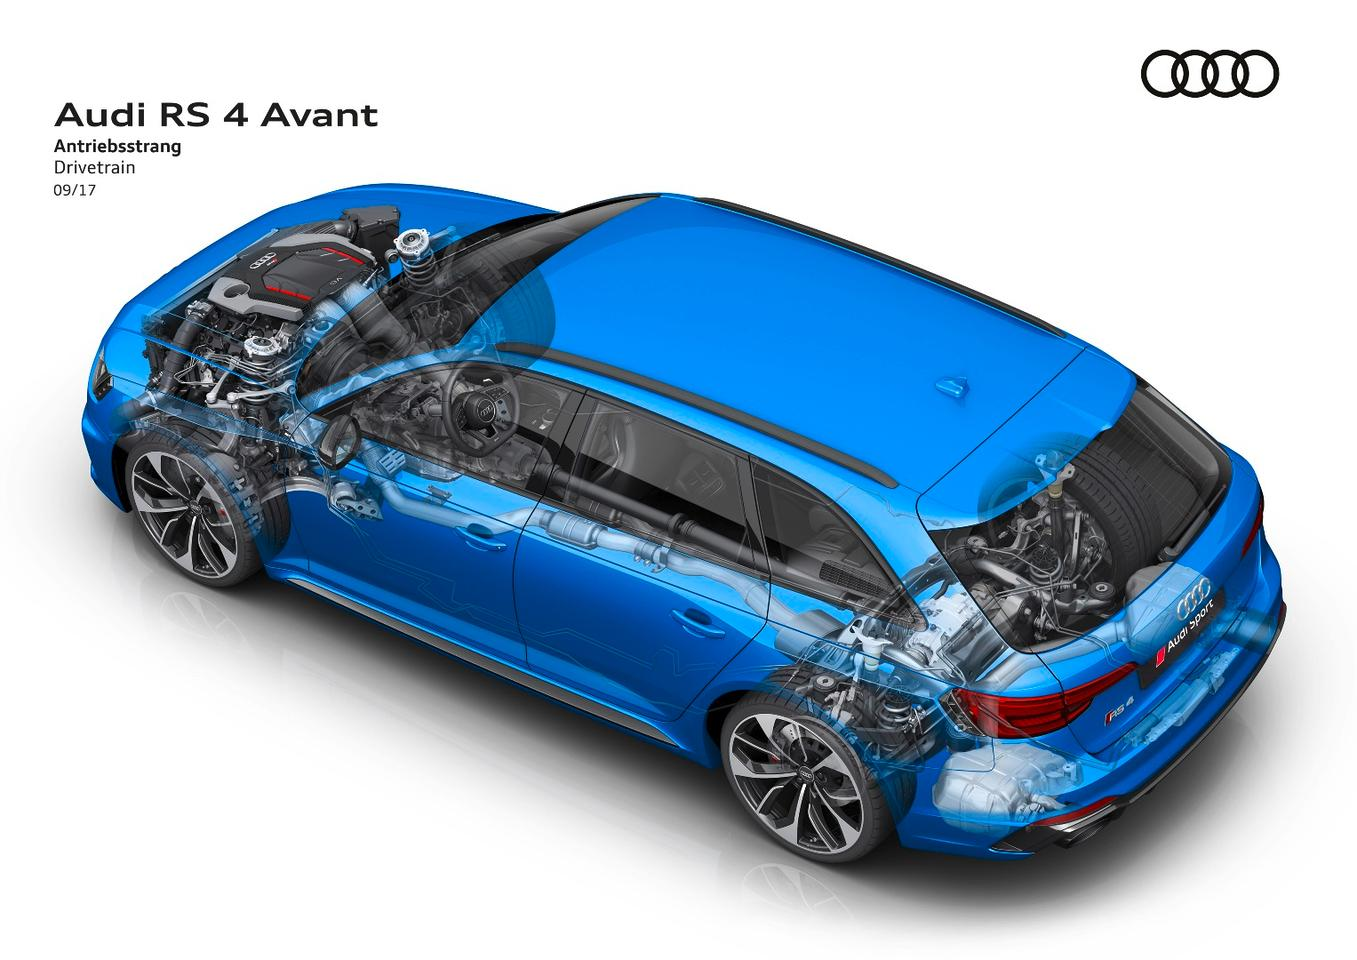 A peek under the skin of the Audi RS 4 Avant